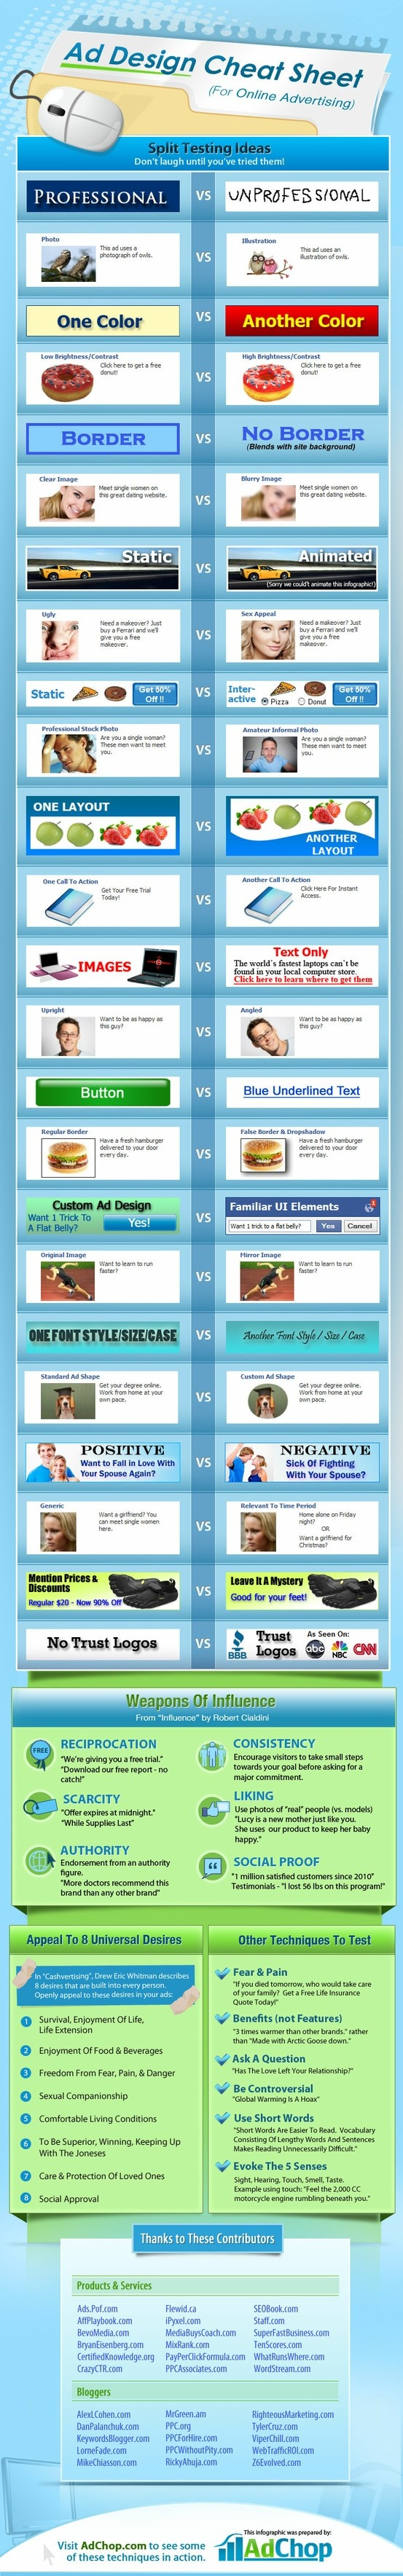 Here's a quick look at slight differences in design which may create huge variations in response.  It's a good idea to test some of these for best response to your particular website.